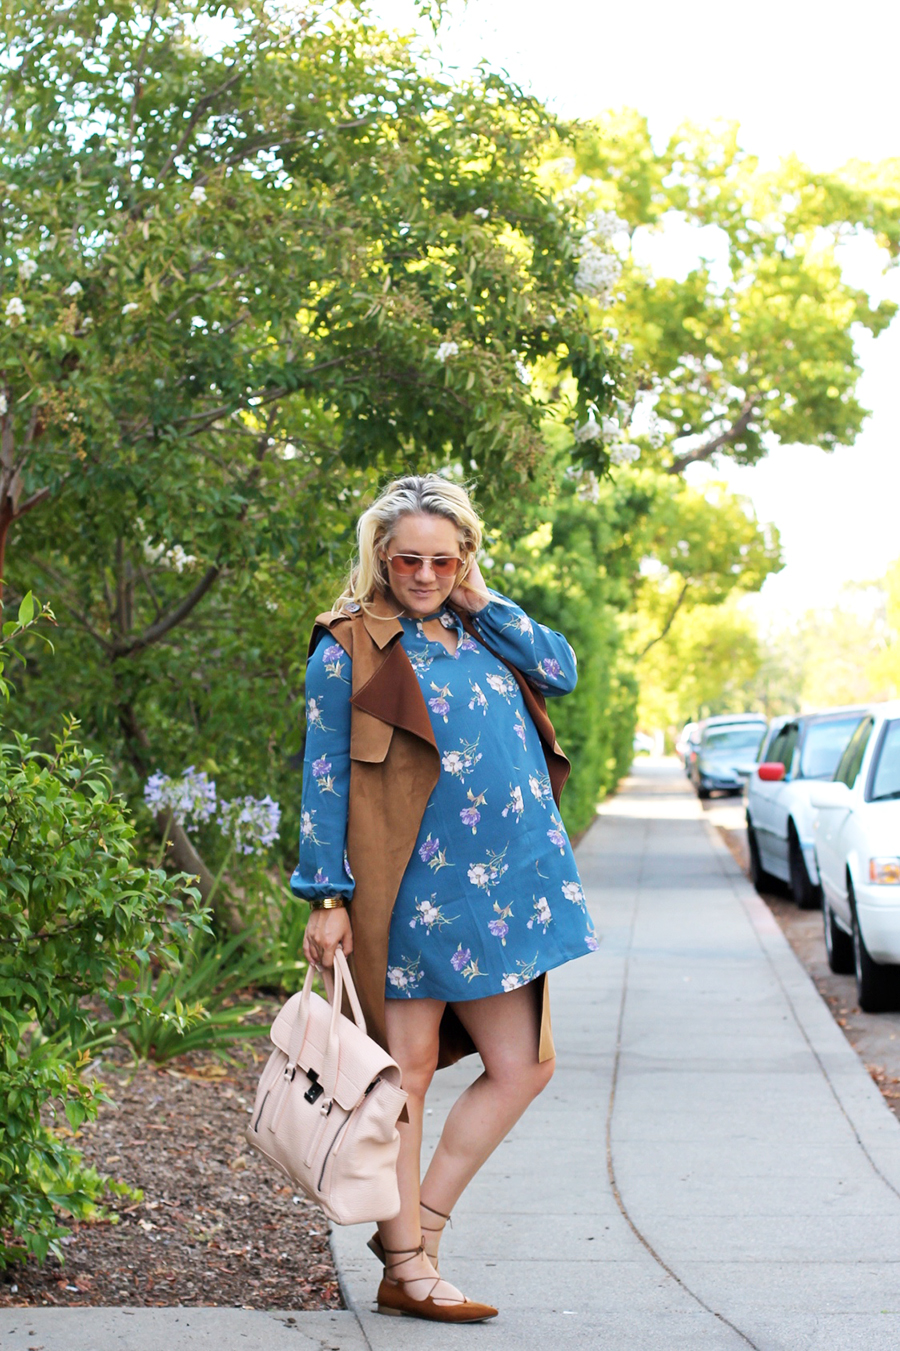 Fall Transition-Nordstrom Anniversary Sale-Maternity Style-Fall Fashion-Have Need Want 3